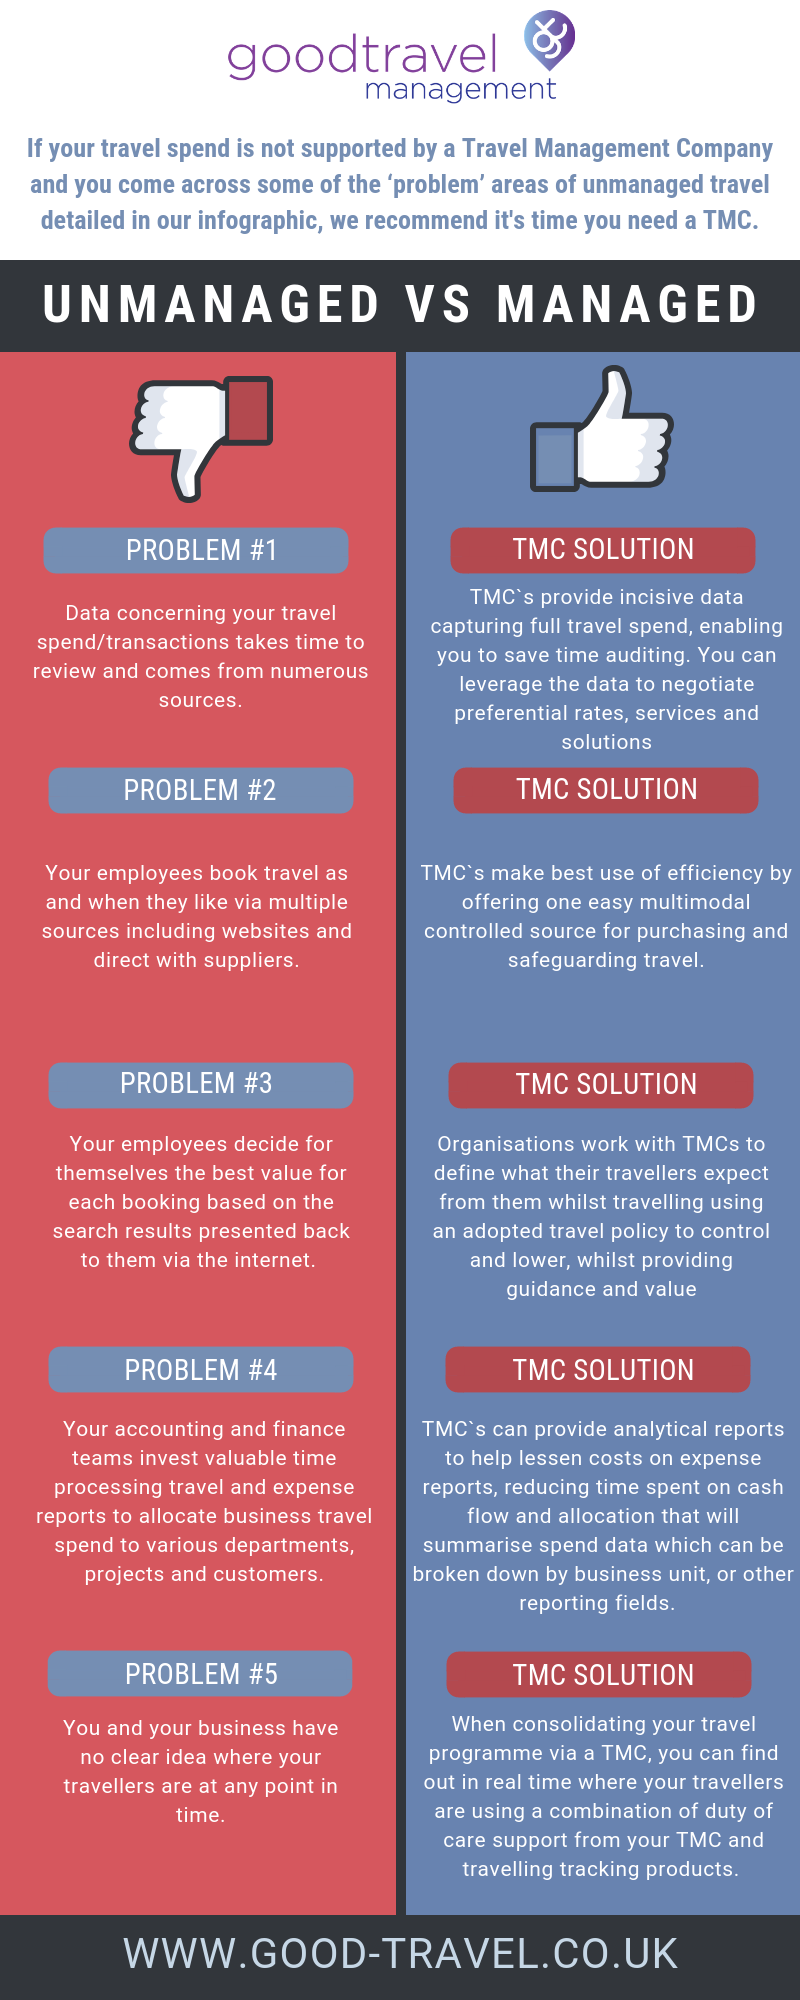 Infographic: Unmanaged VS Managed business travel is it time to use a Travel Management Company?